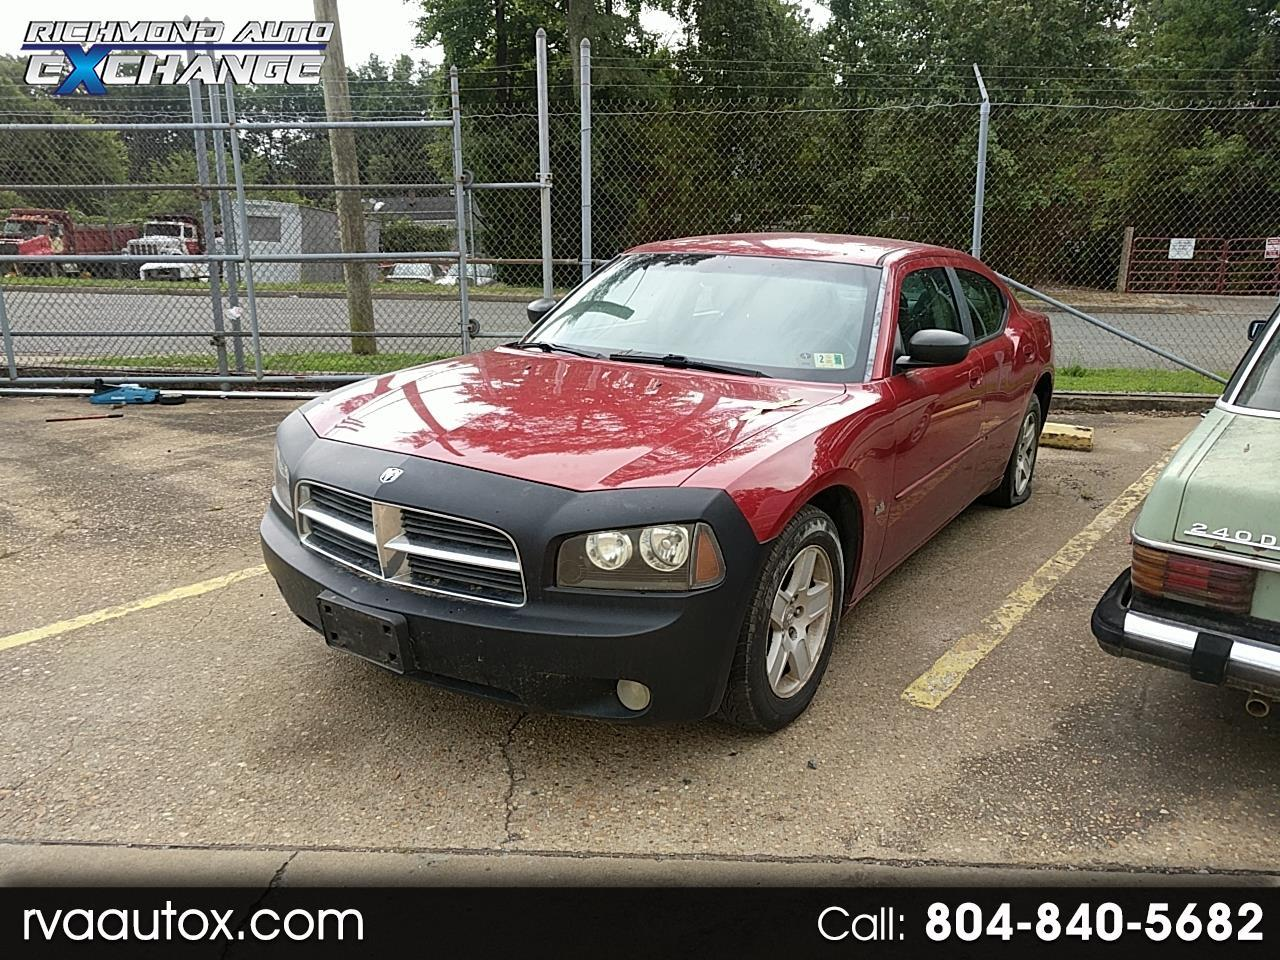 2007 Dodge Charger $850